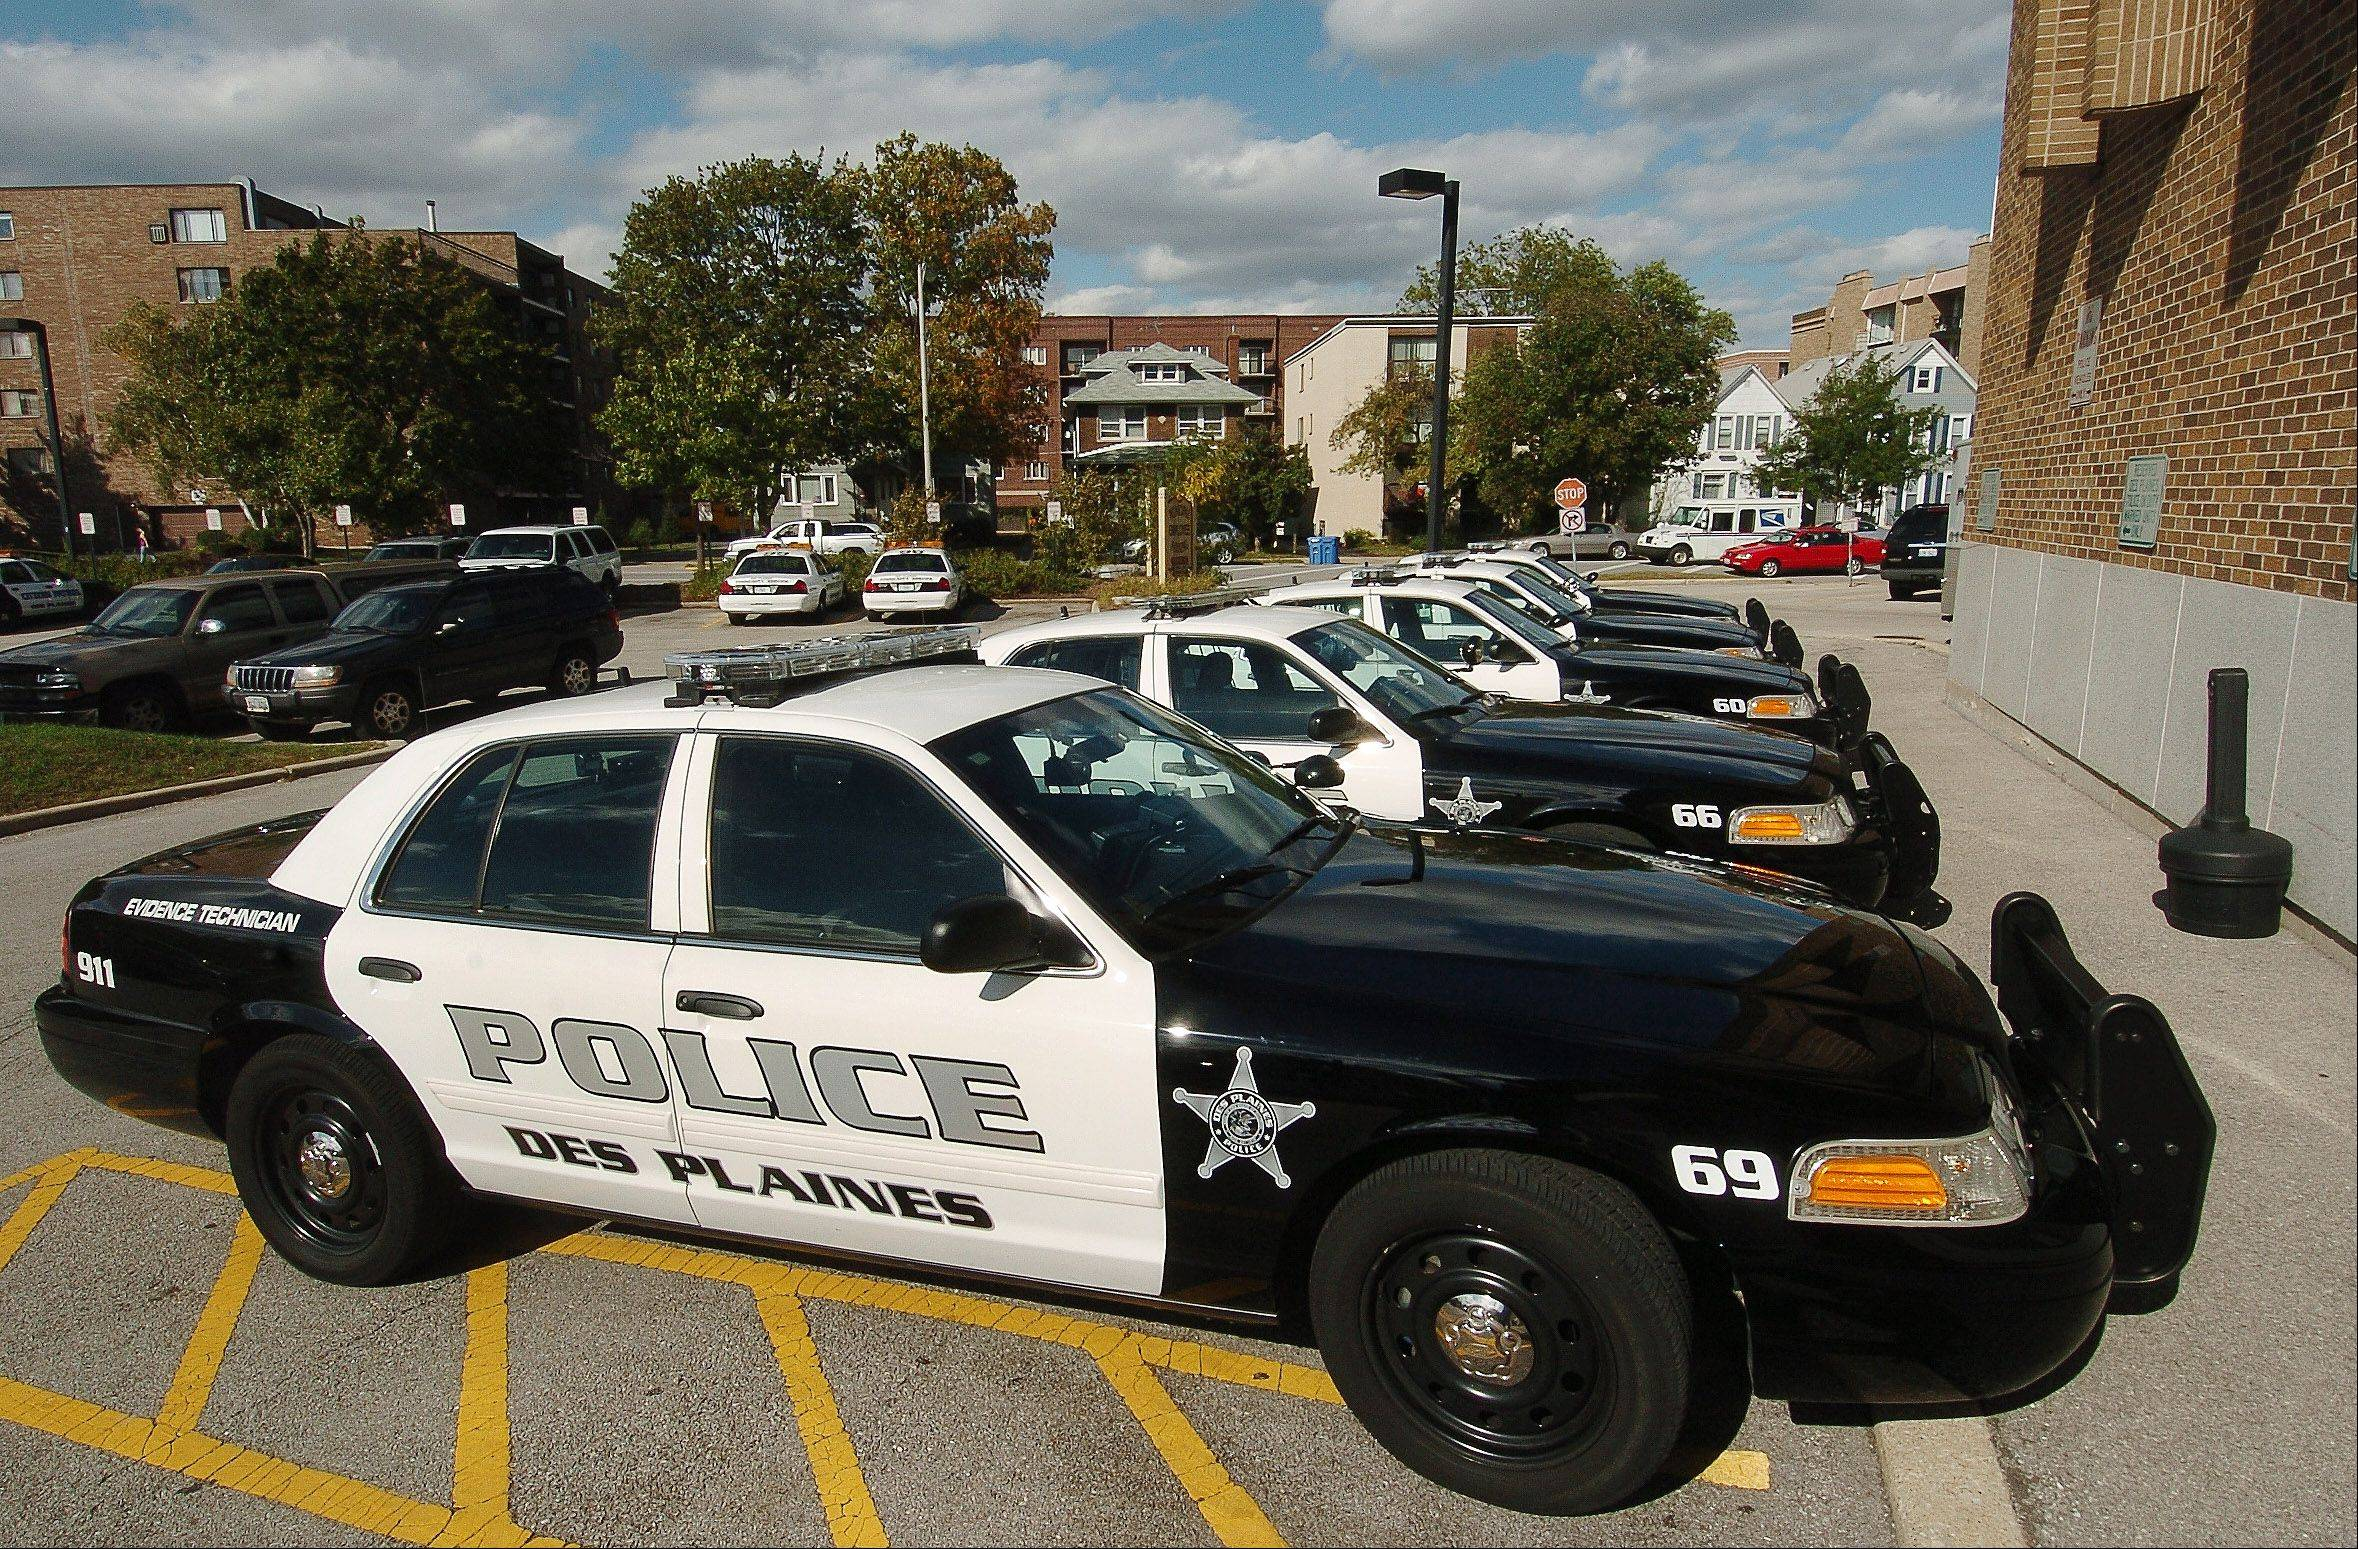 "Several Des Plaines police officers are facing suspensions for violating department rules and policies related to ""irregularities"" with the reporting of hours. The city said it reported the problems itself to authorities after an officer reported them to management."